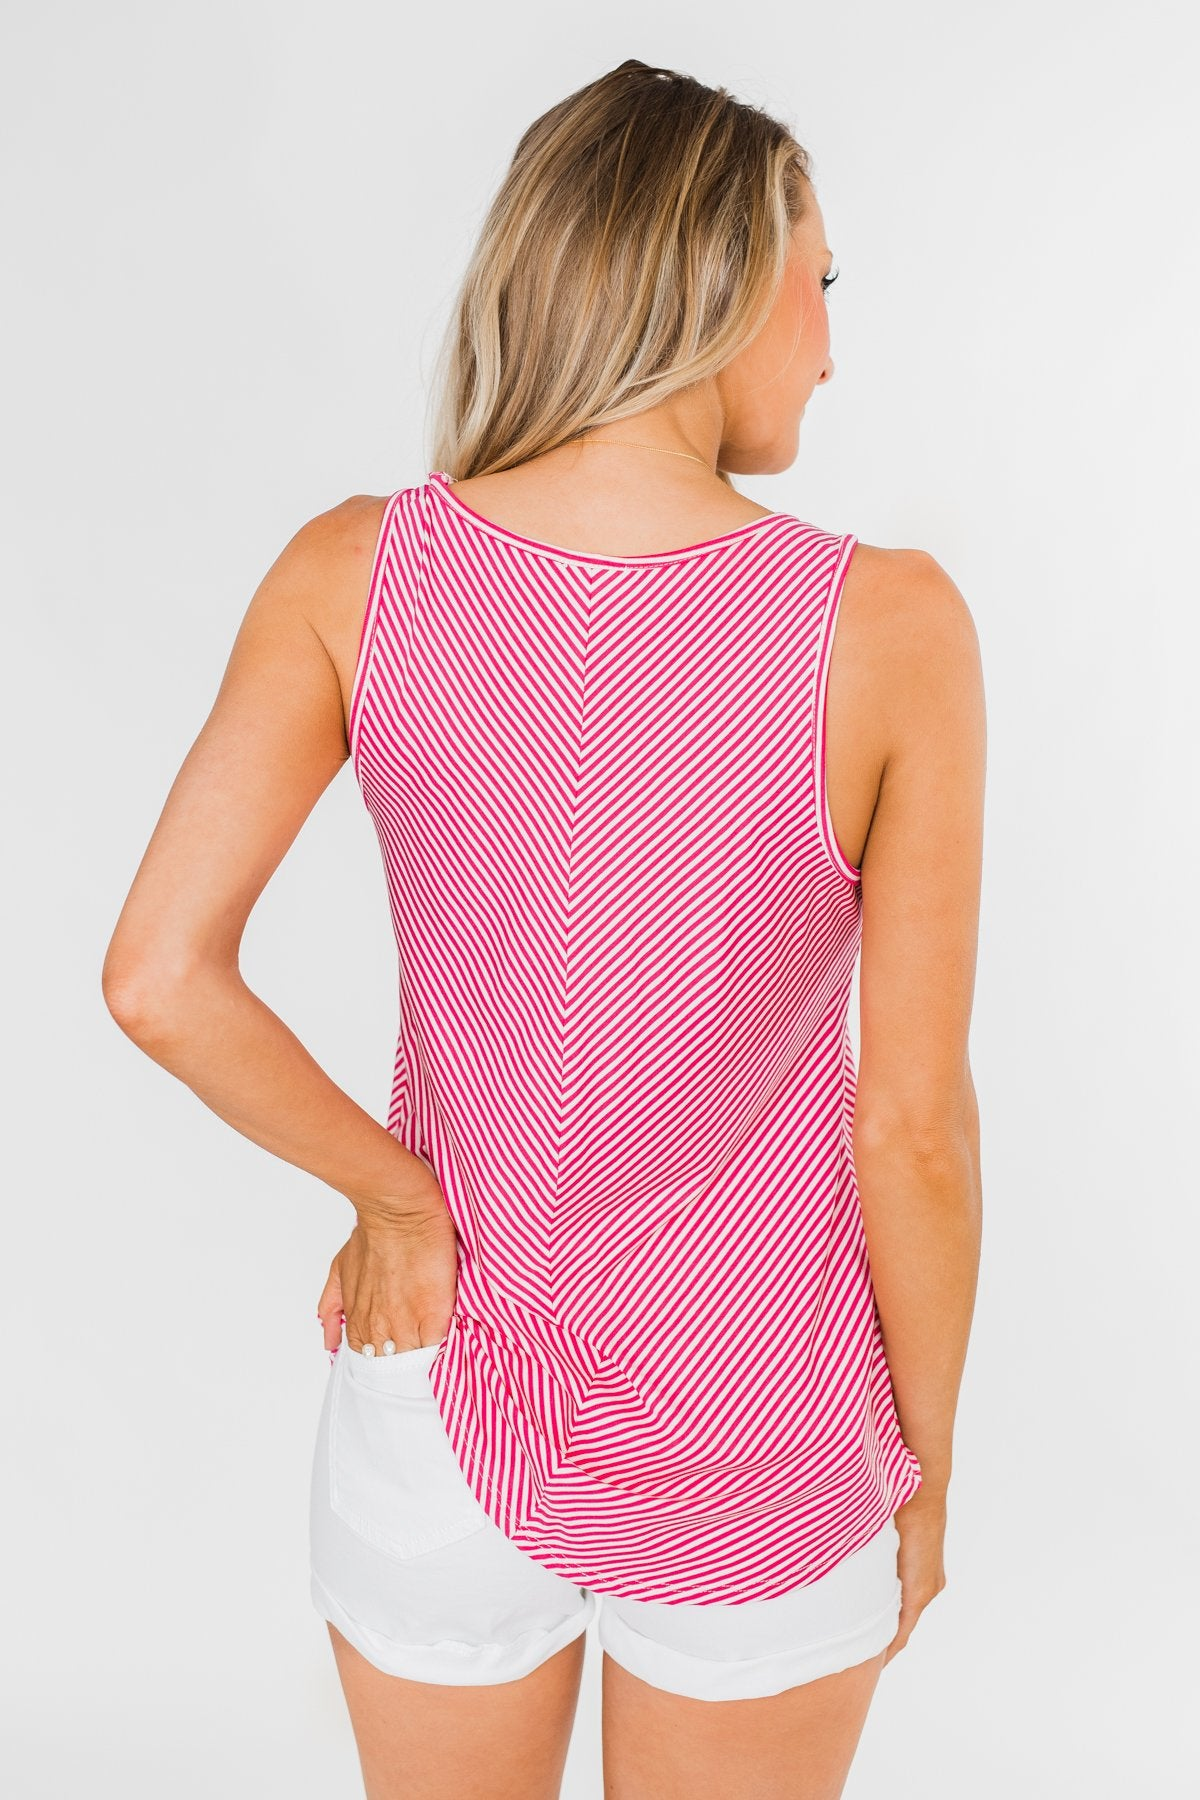 Line It Up Striped Pocket Tank Top- Fuchsia